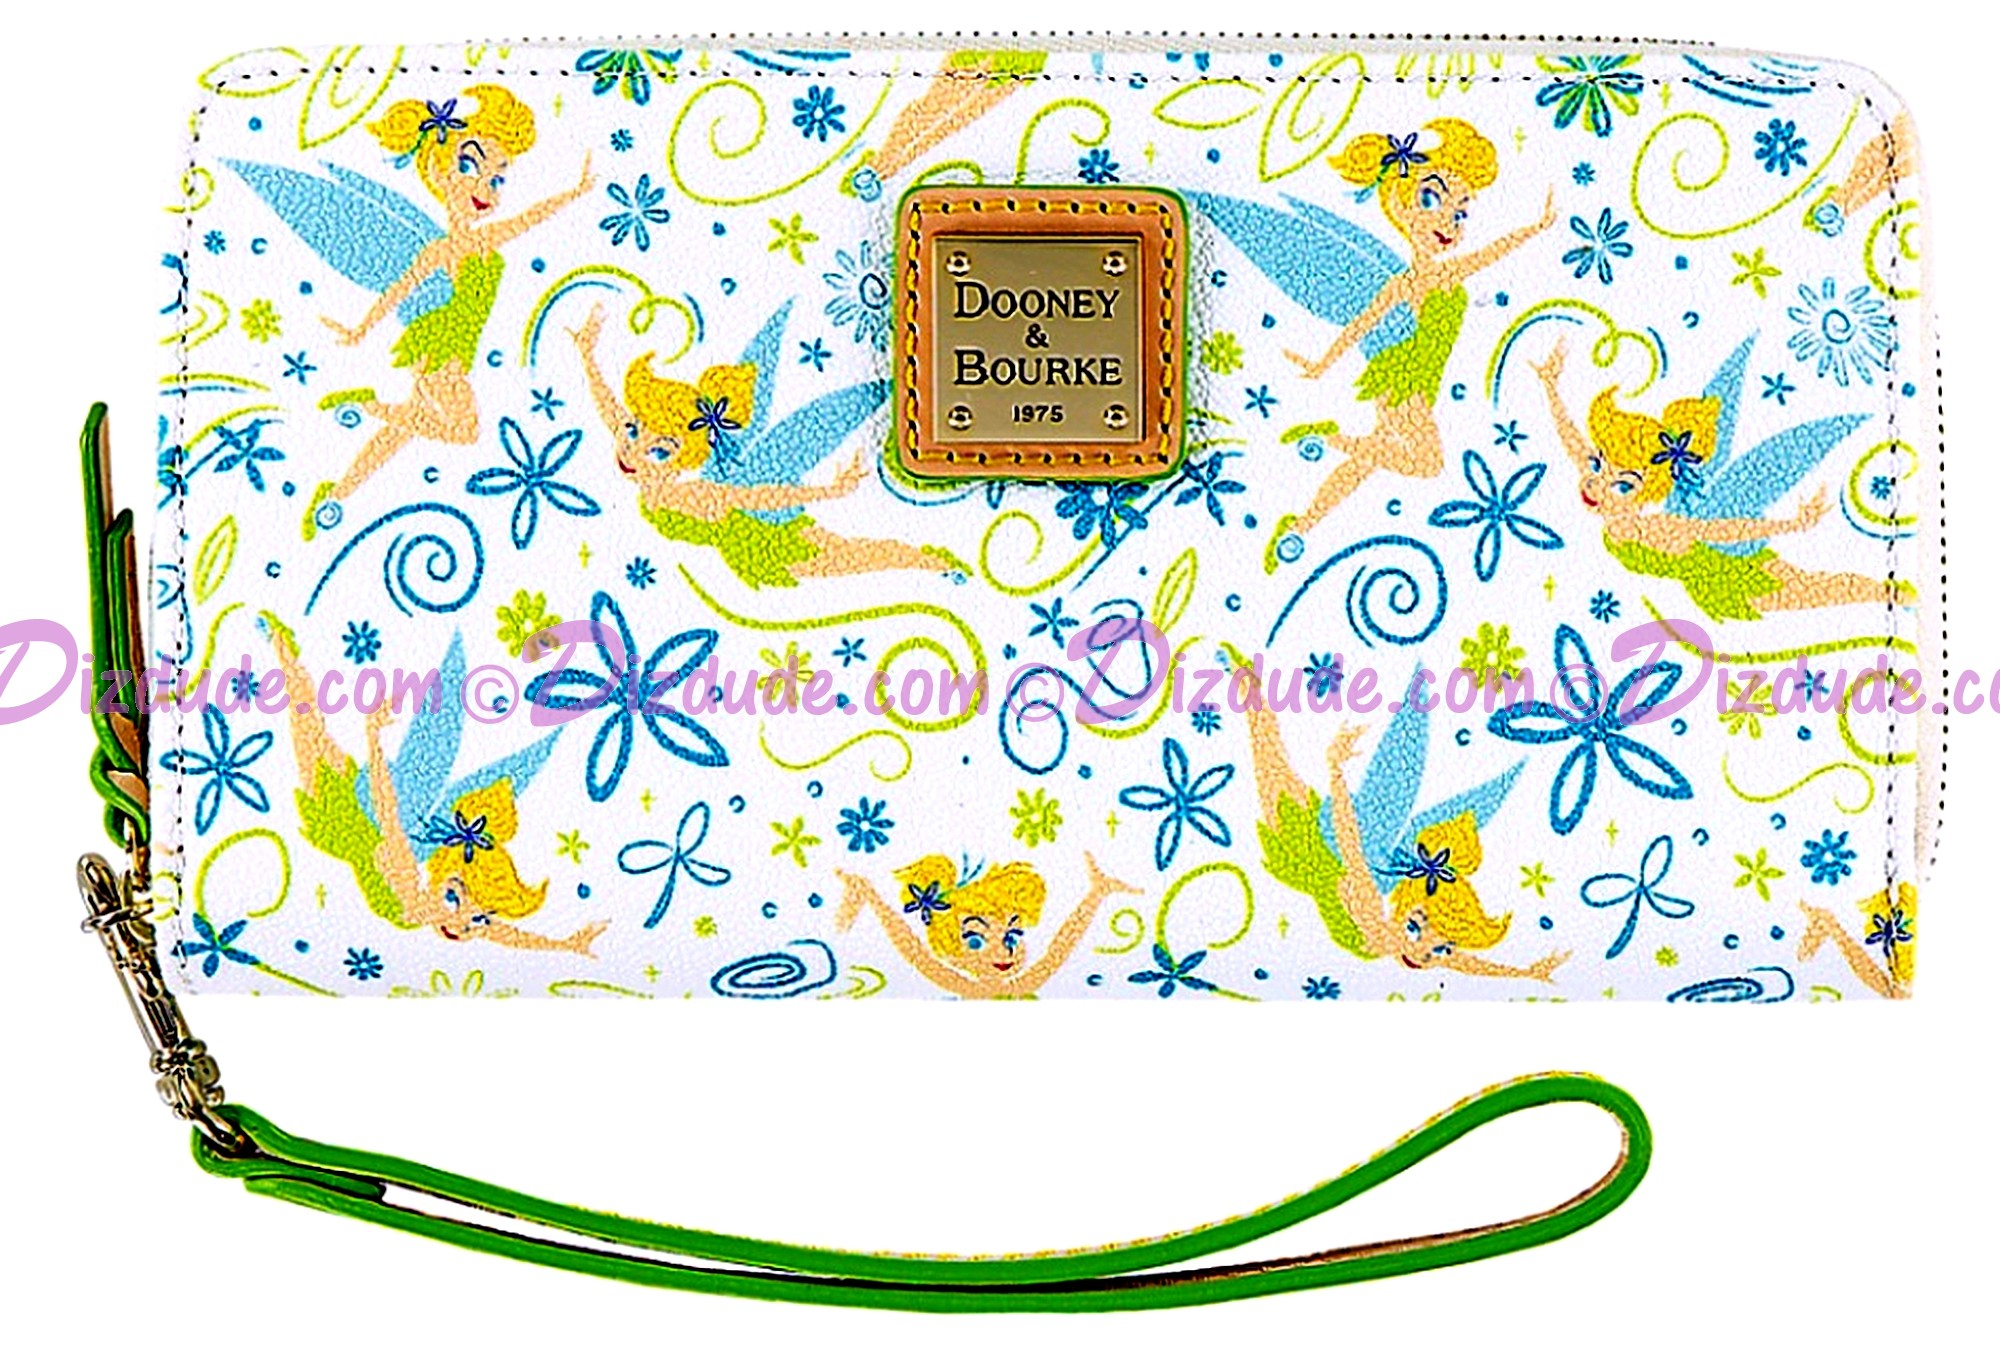 Dooney & Bourke Tinker Bell Floral Large Wallet With Phone Pocket - Disney World Exclusive © Dizdude.com